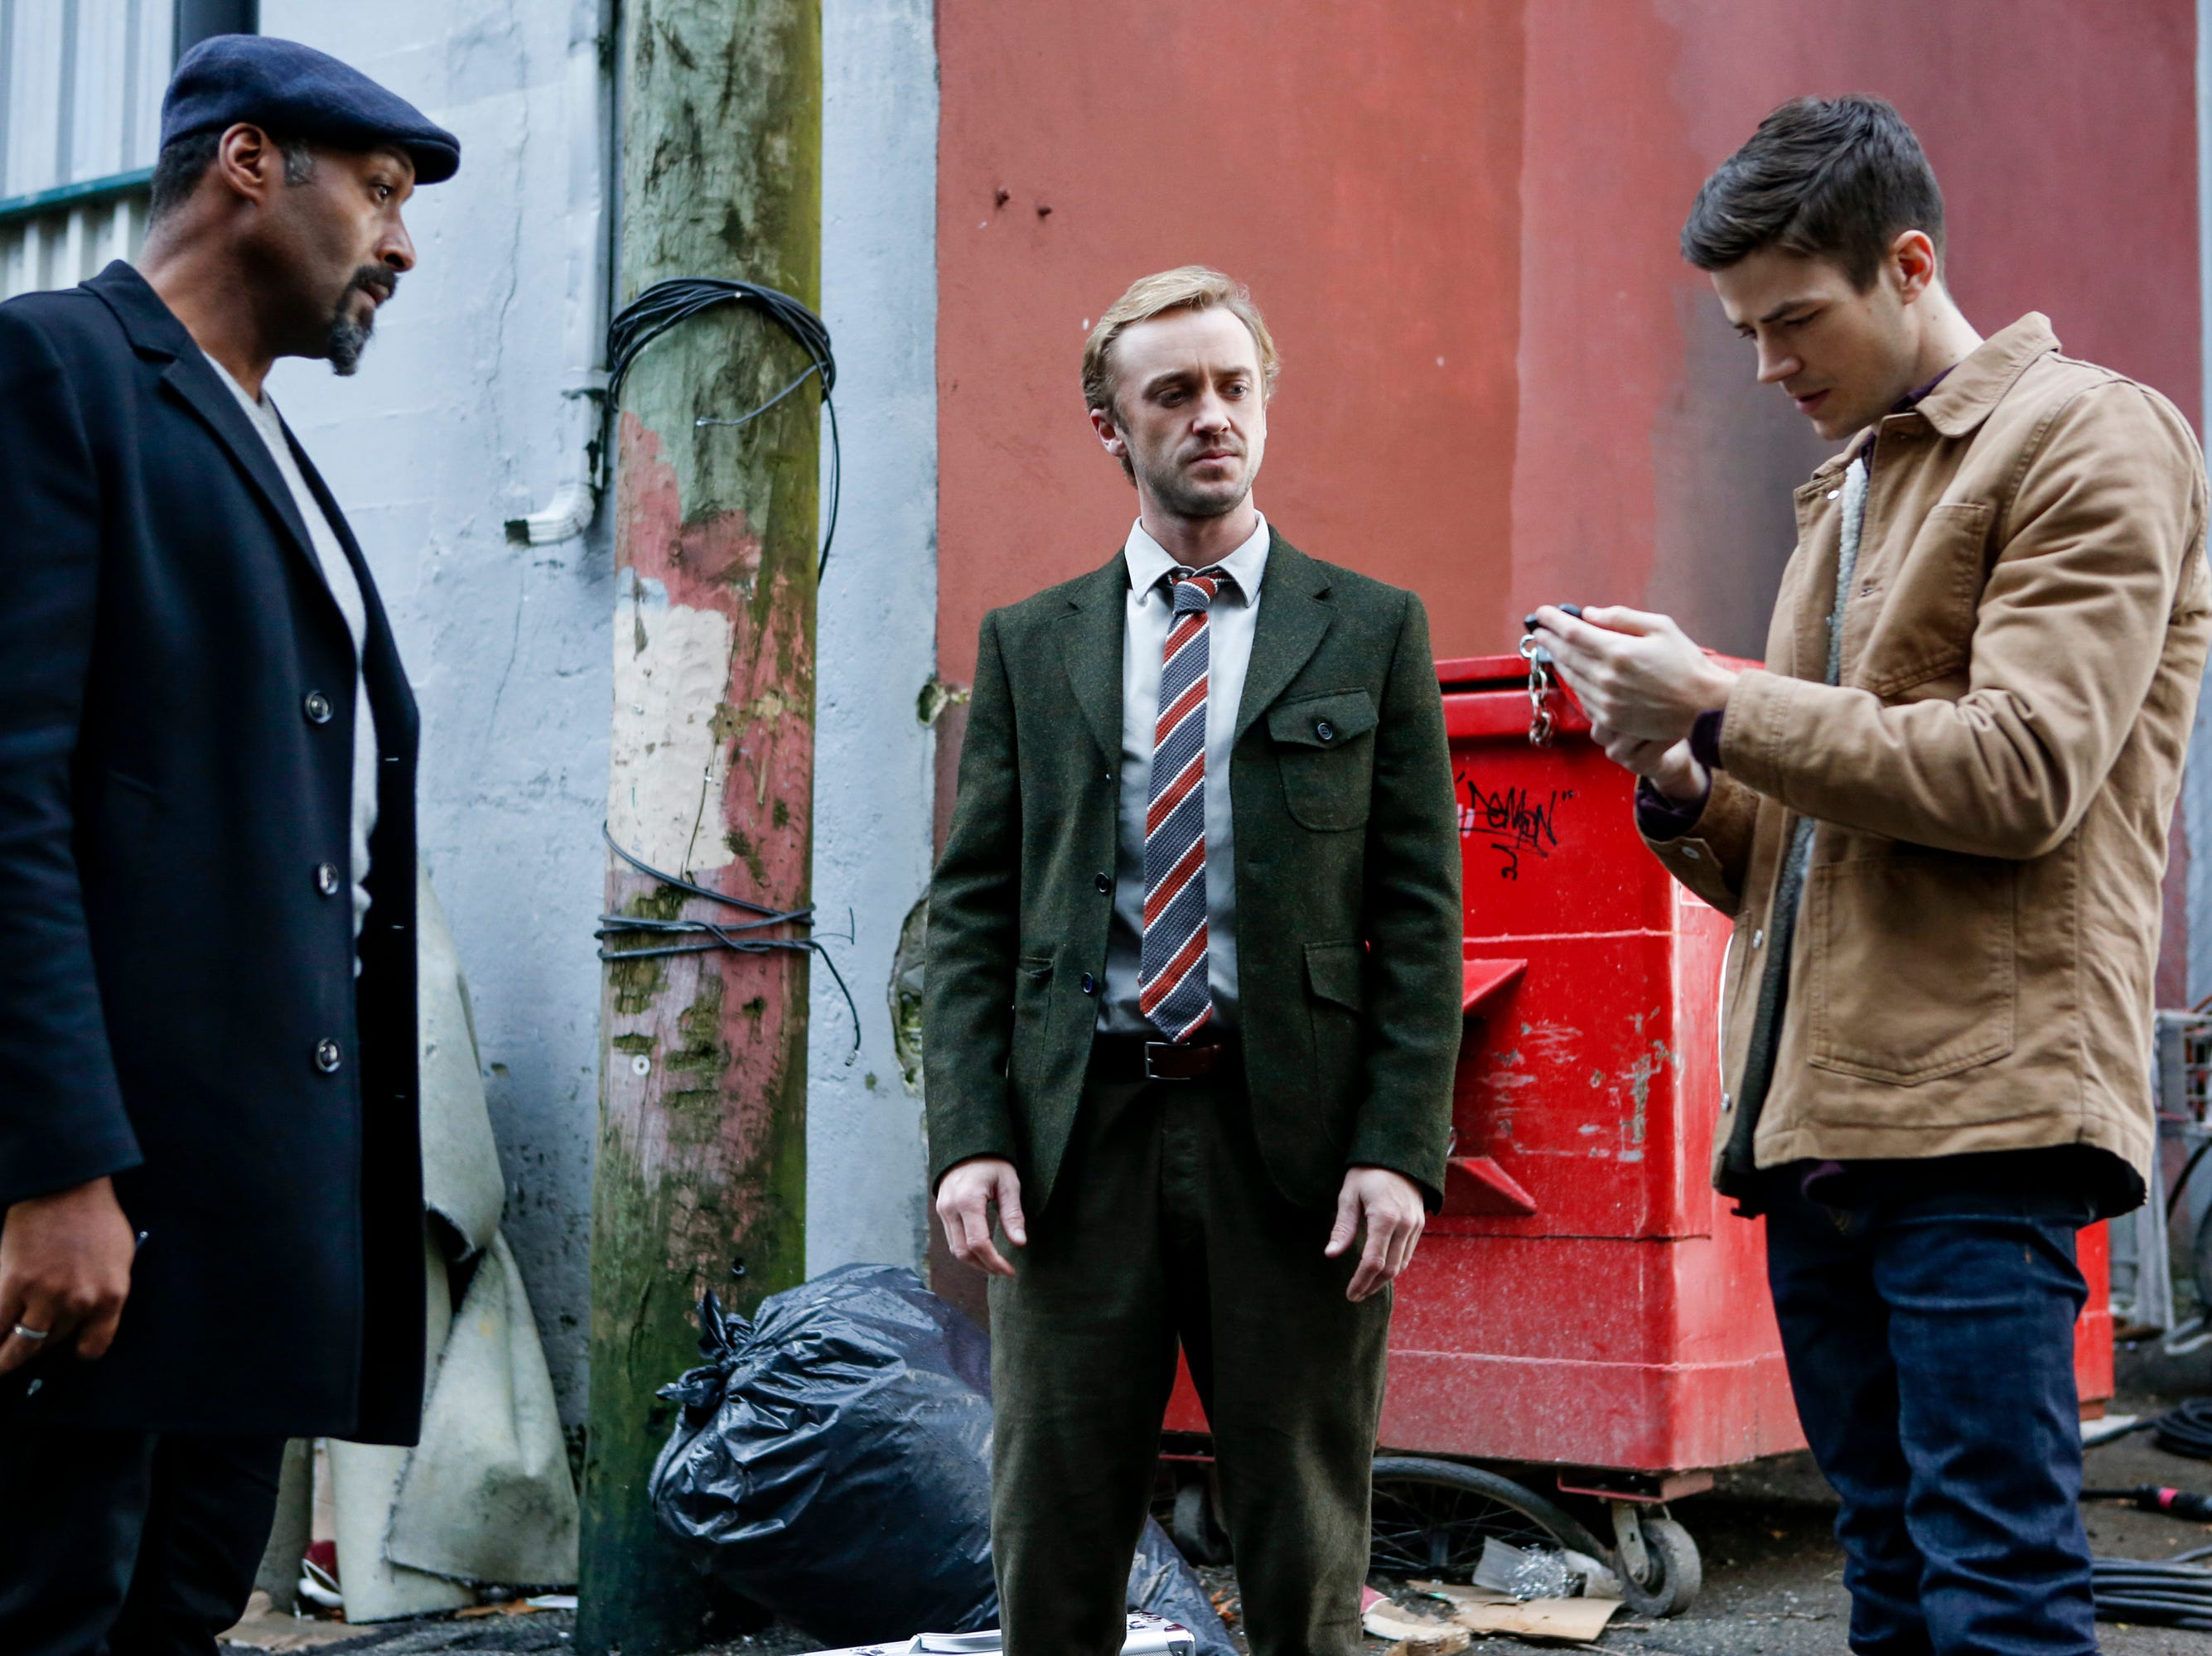 """Felton (with Jesse L. Martin, left, and Grant Gustin, right) had a season-long arc as Julian Albert on CW's """"The Flash."""""""